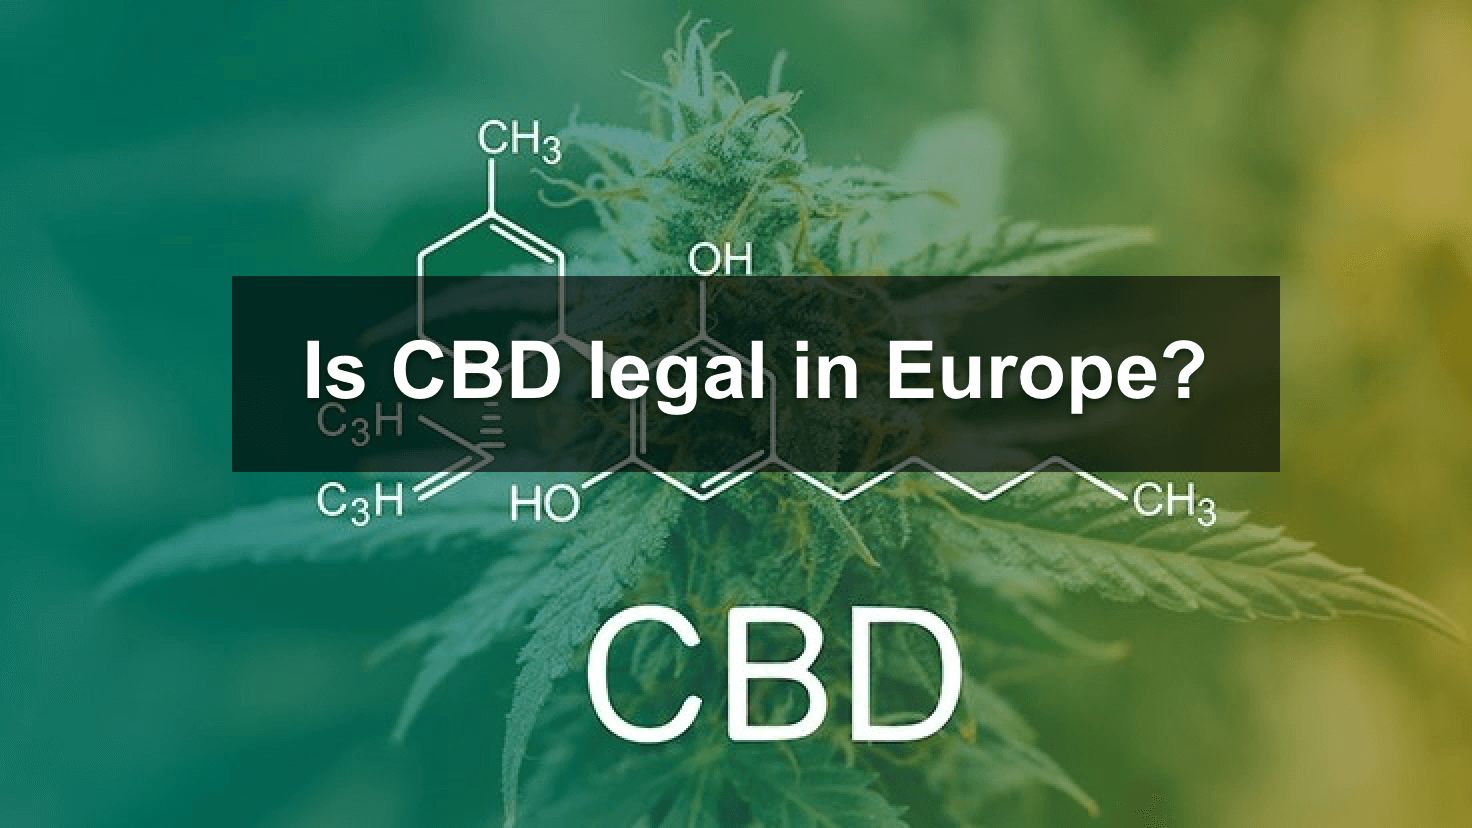 CBD in Europe, is CBD legal? is it legal in your country? A quick guide to CBD legal status